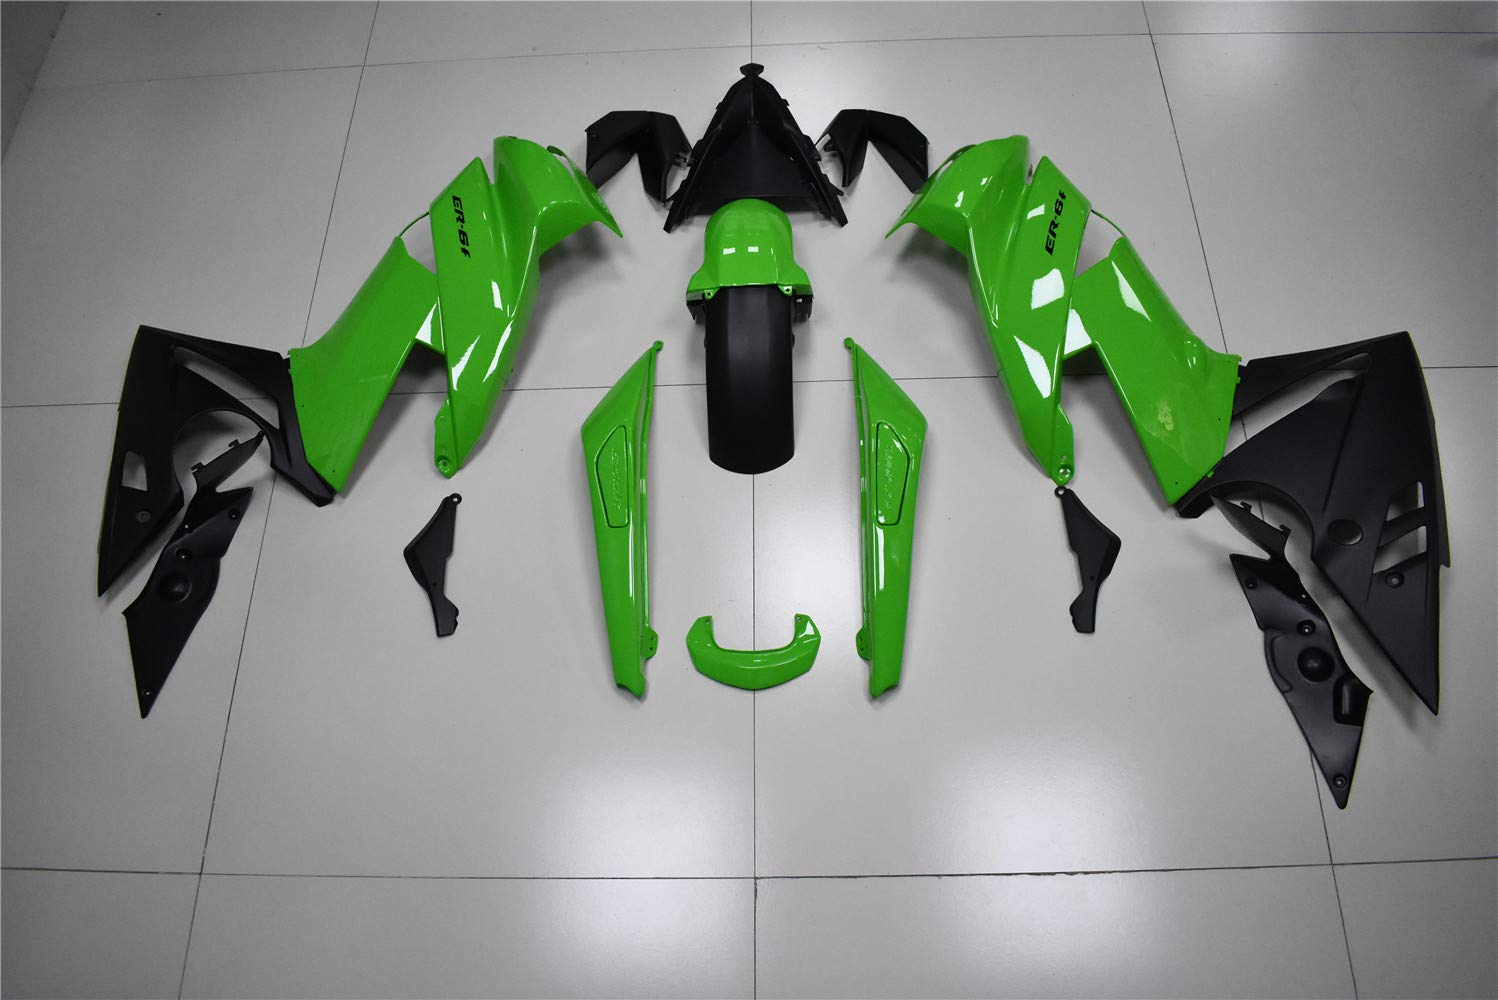 NT FAIRING Glossy Matte Black Fairing Fit for KAWASAKI NINJA 2009 2010 2011 650R New ABS Plastics Bodywork Body Kit Bodyframe Body Work 09 10 11